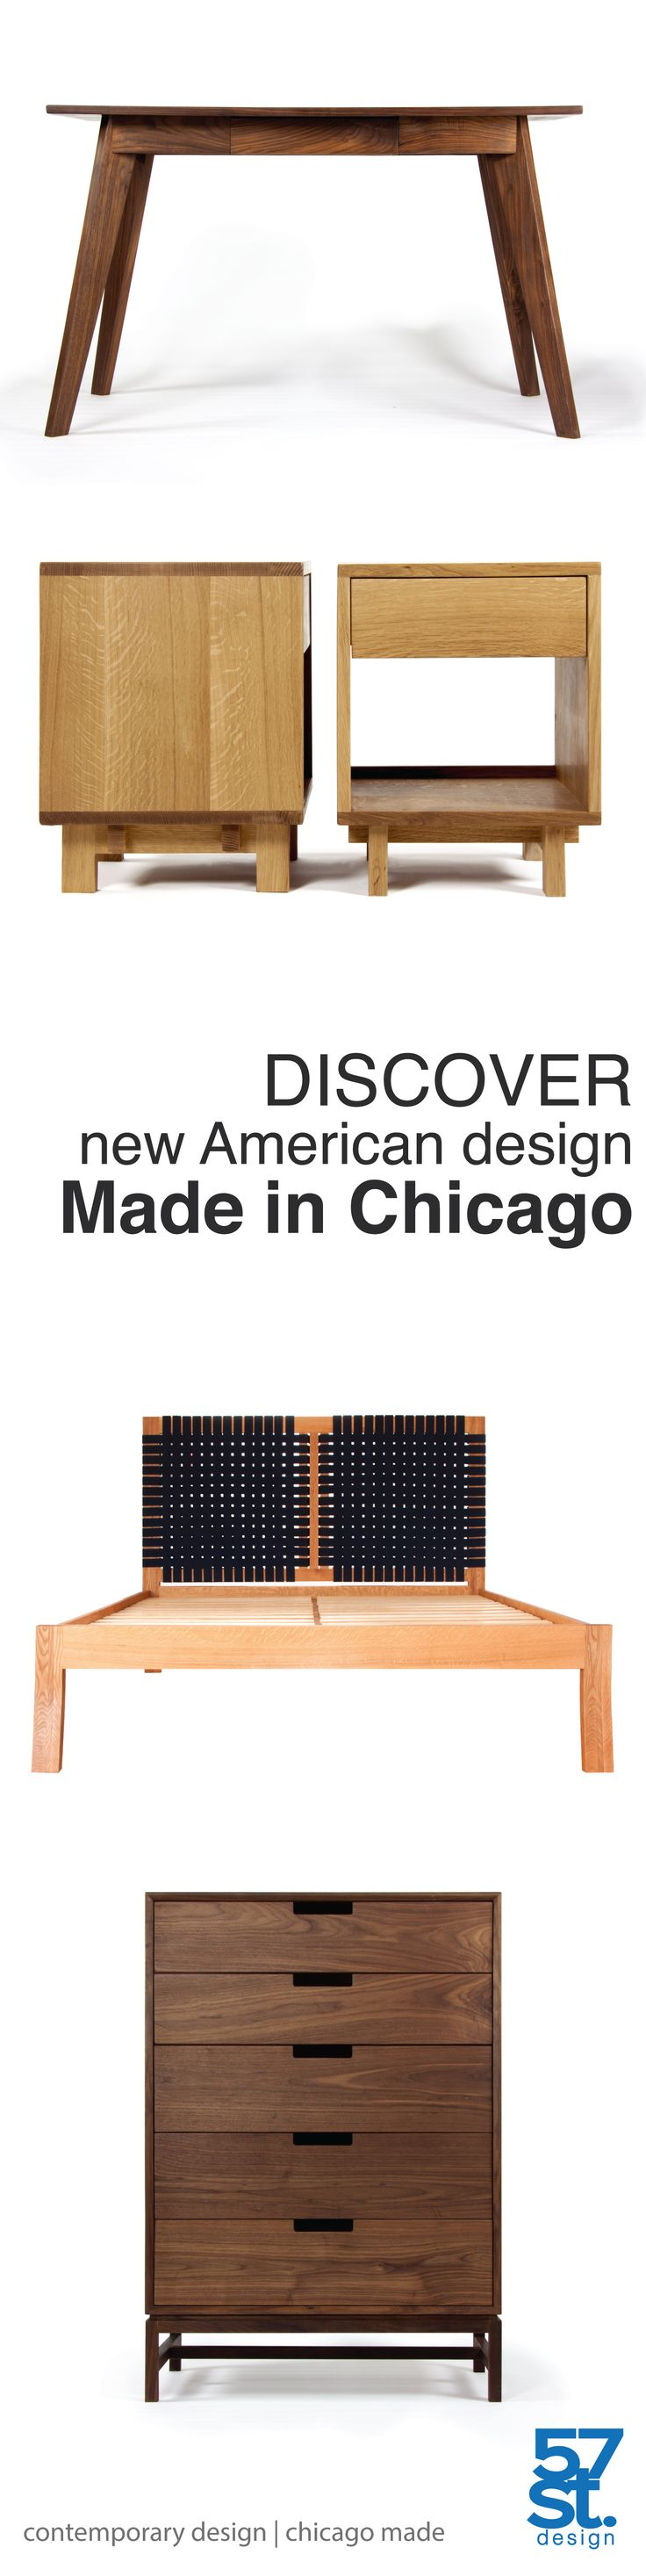 17 best ideas about chicago furniture on pinterest for Idea furniture chicago